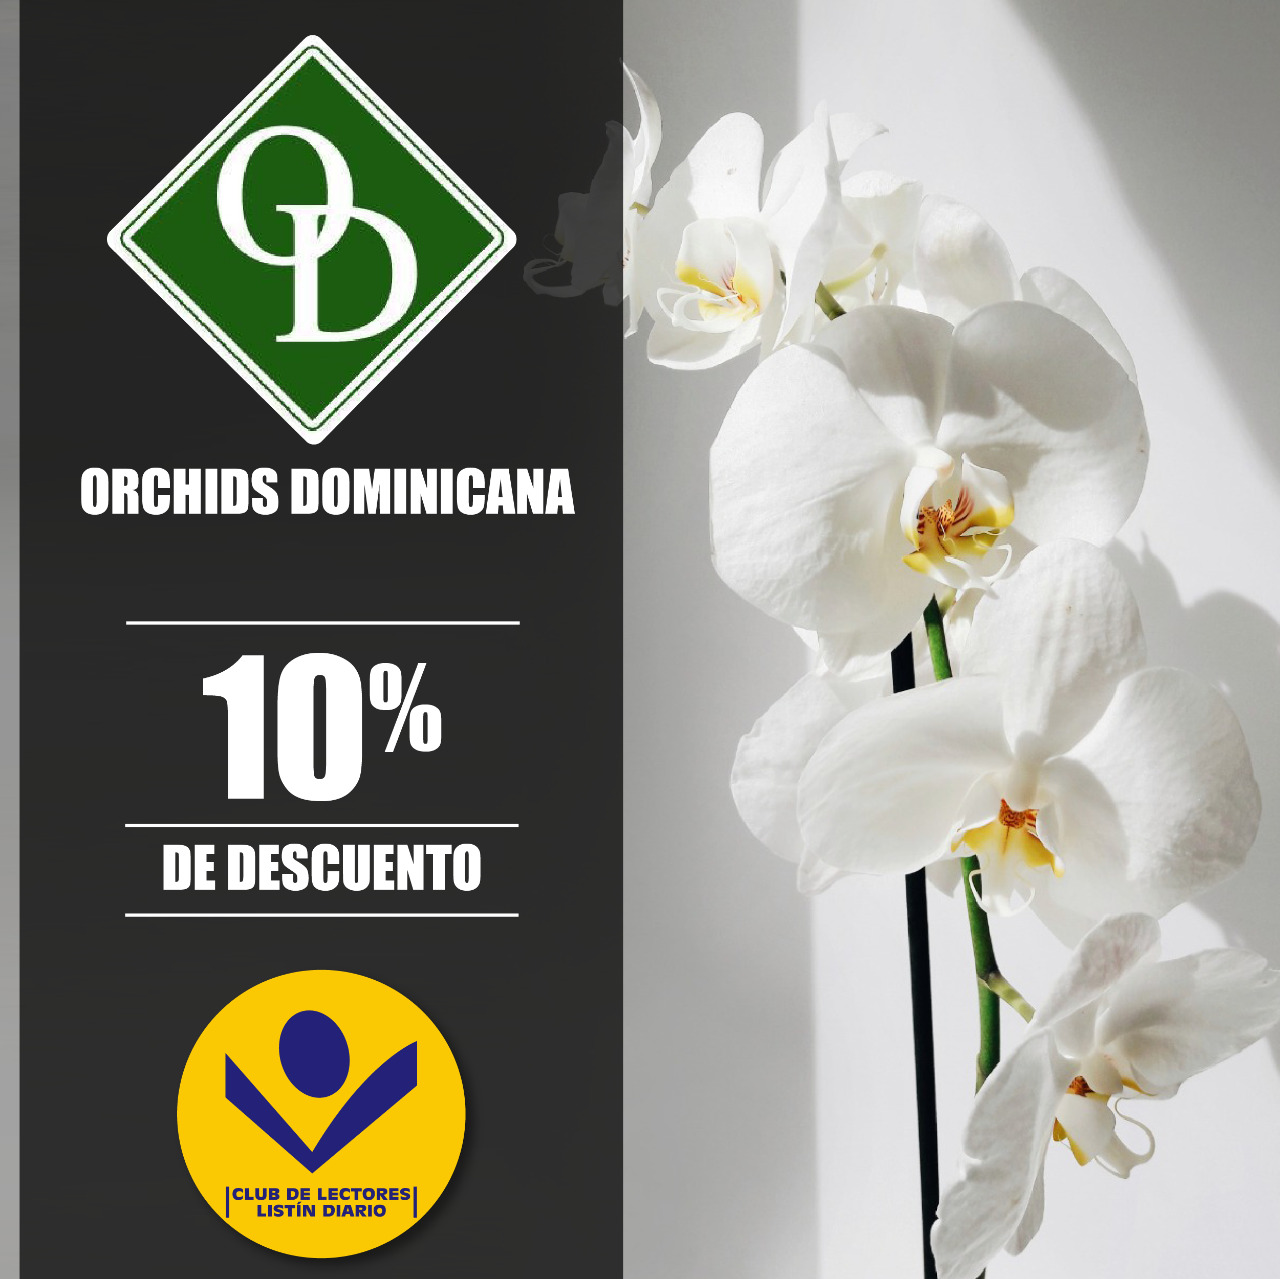 Orchids Dominicana